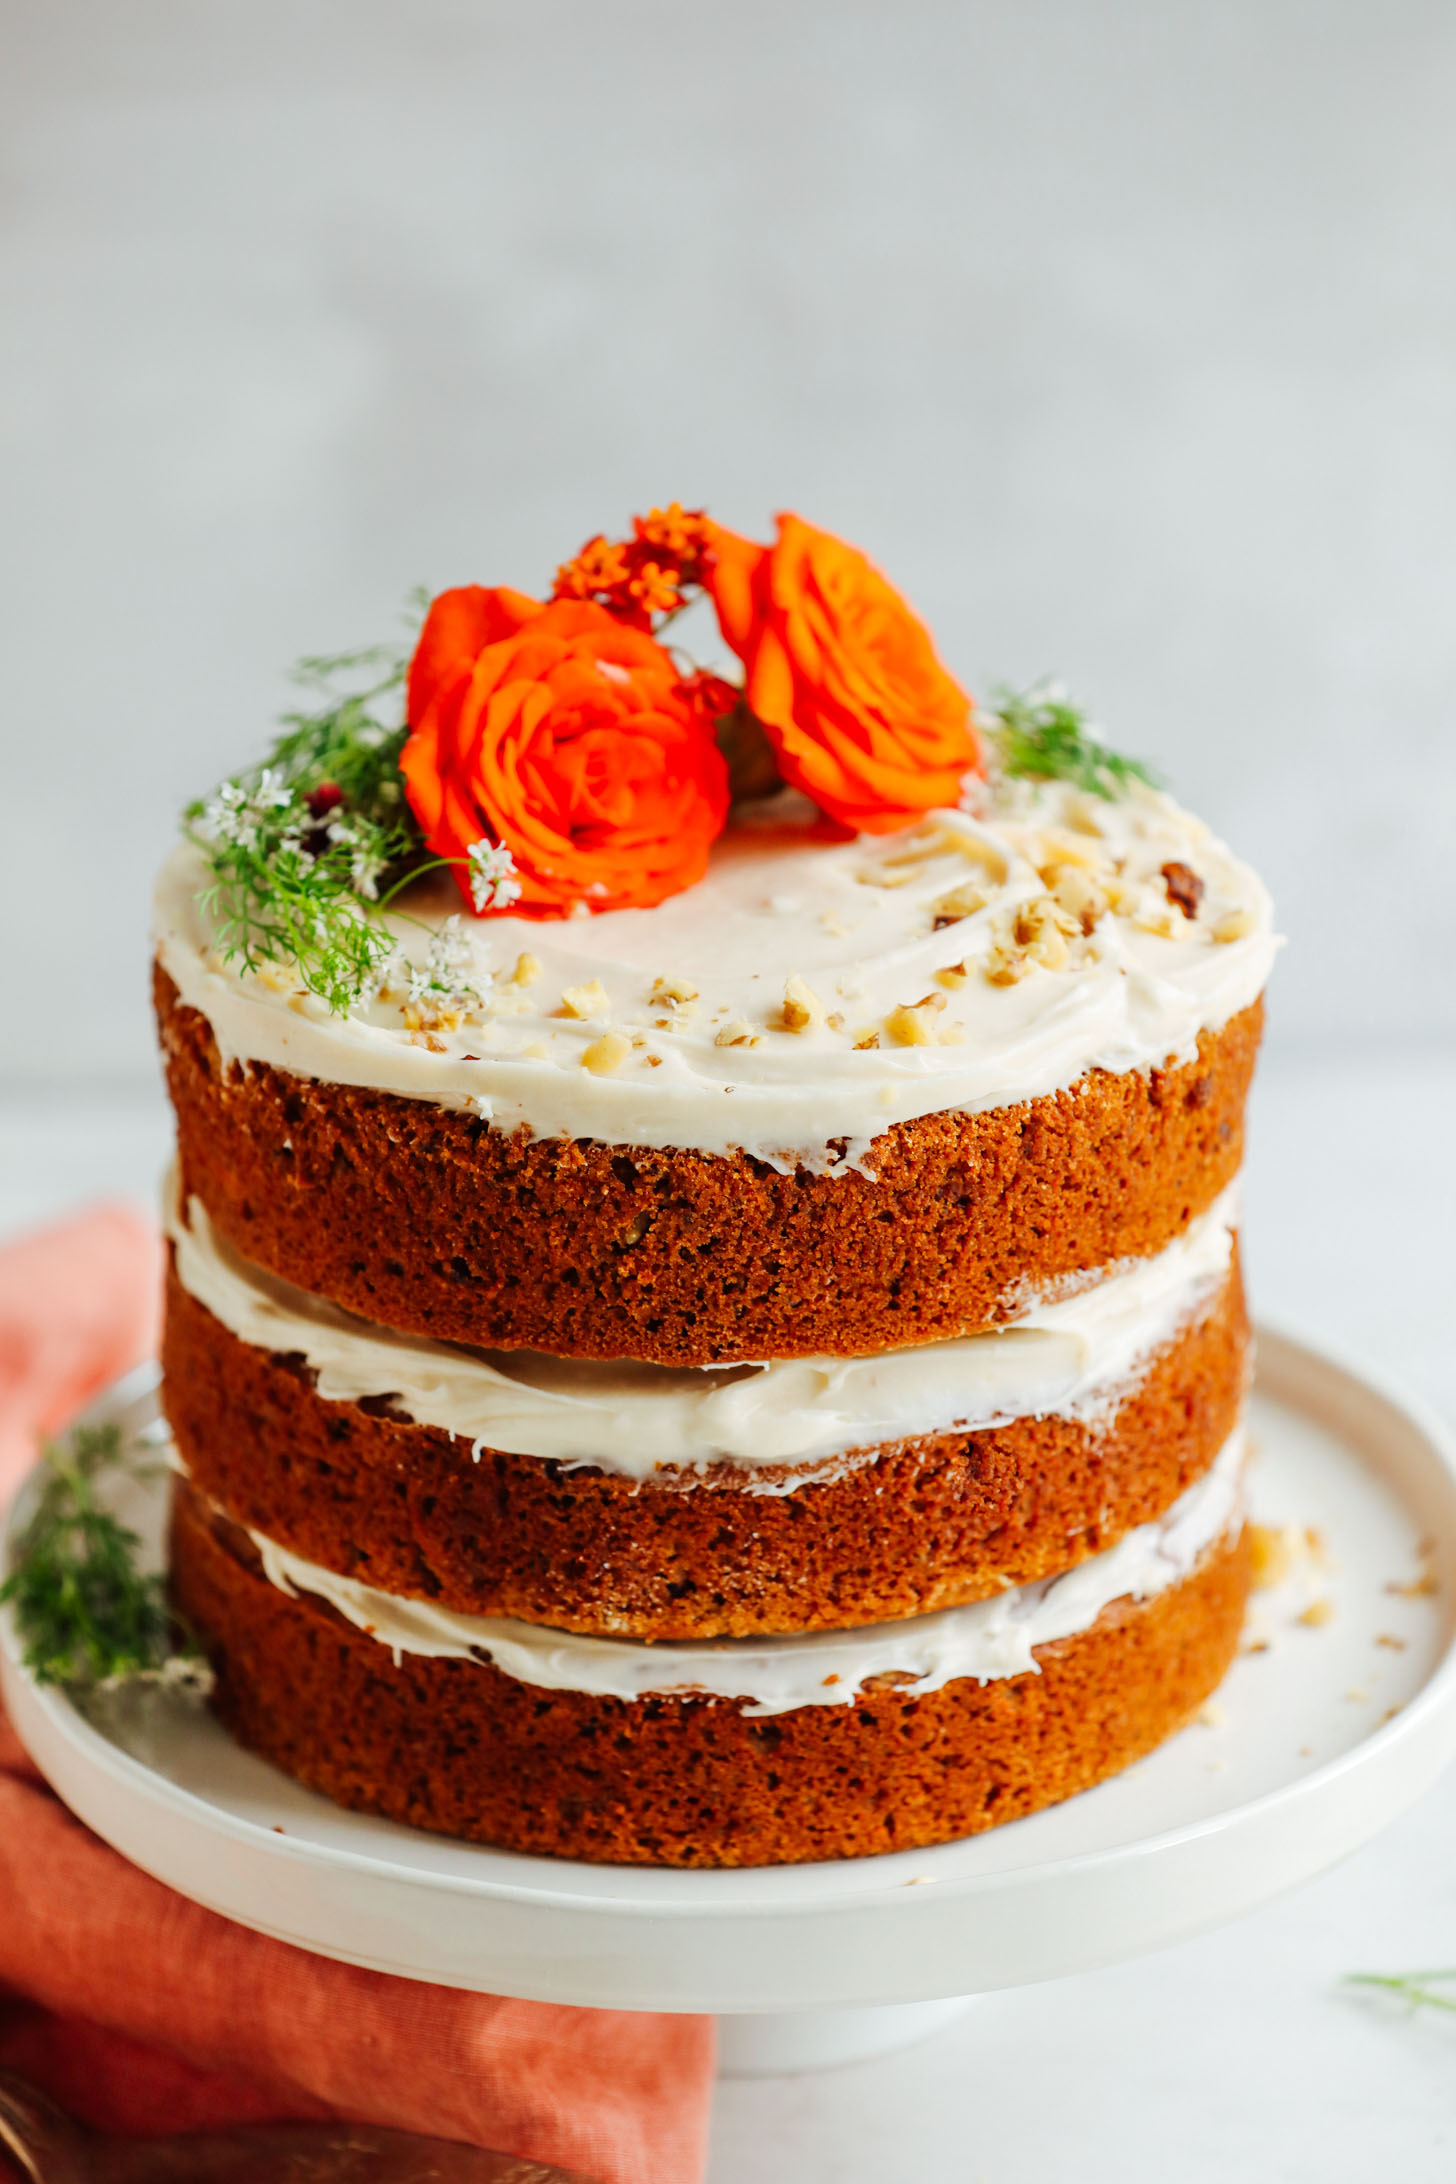 Vegan GlutenFree Carrot Cake Minimalist Baker Recipes